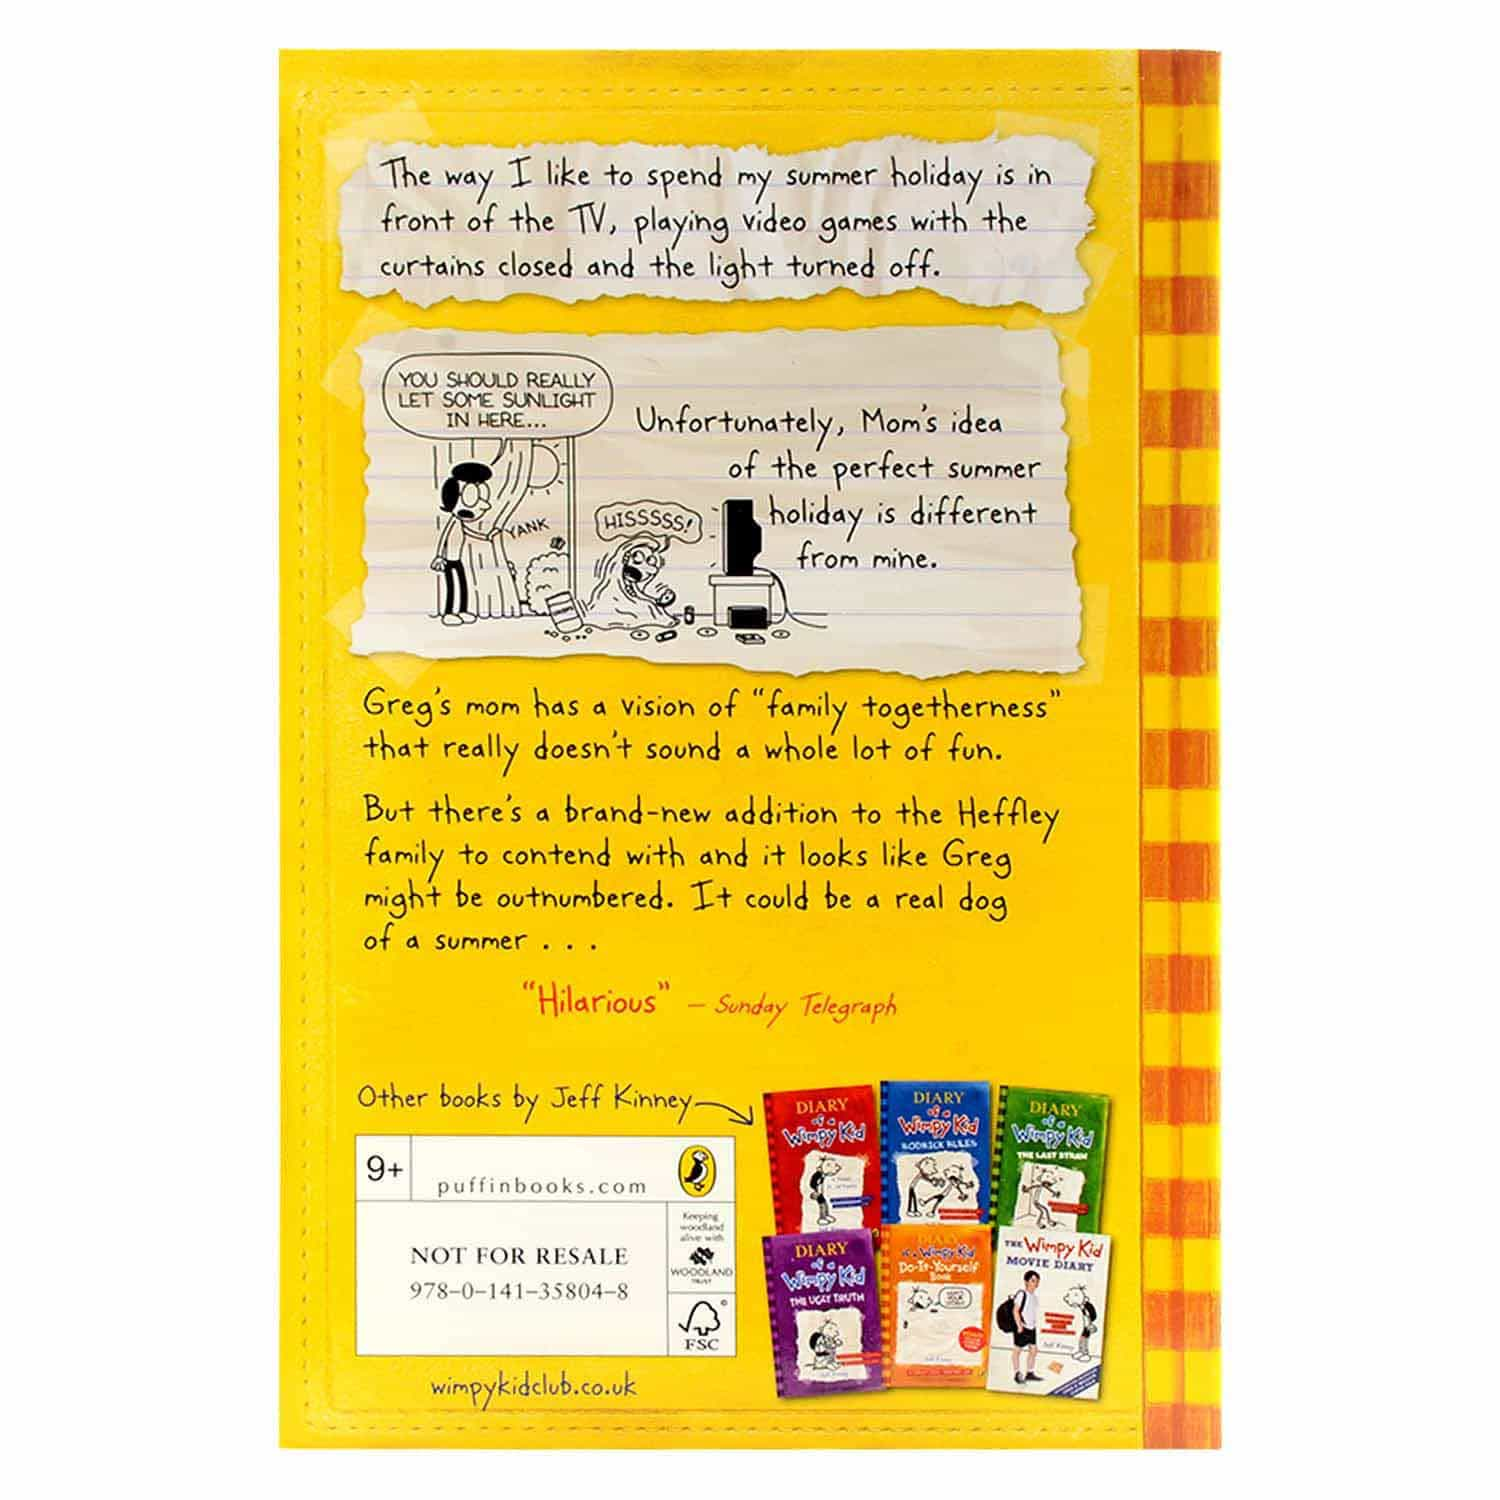 Diary of a Wimpy Kid Series- Dog Days